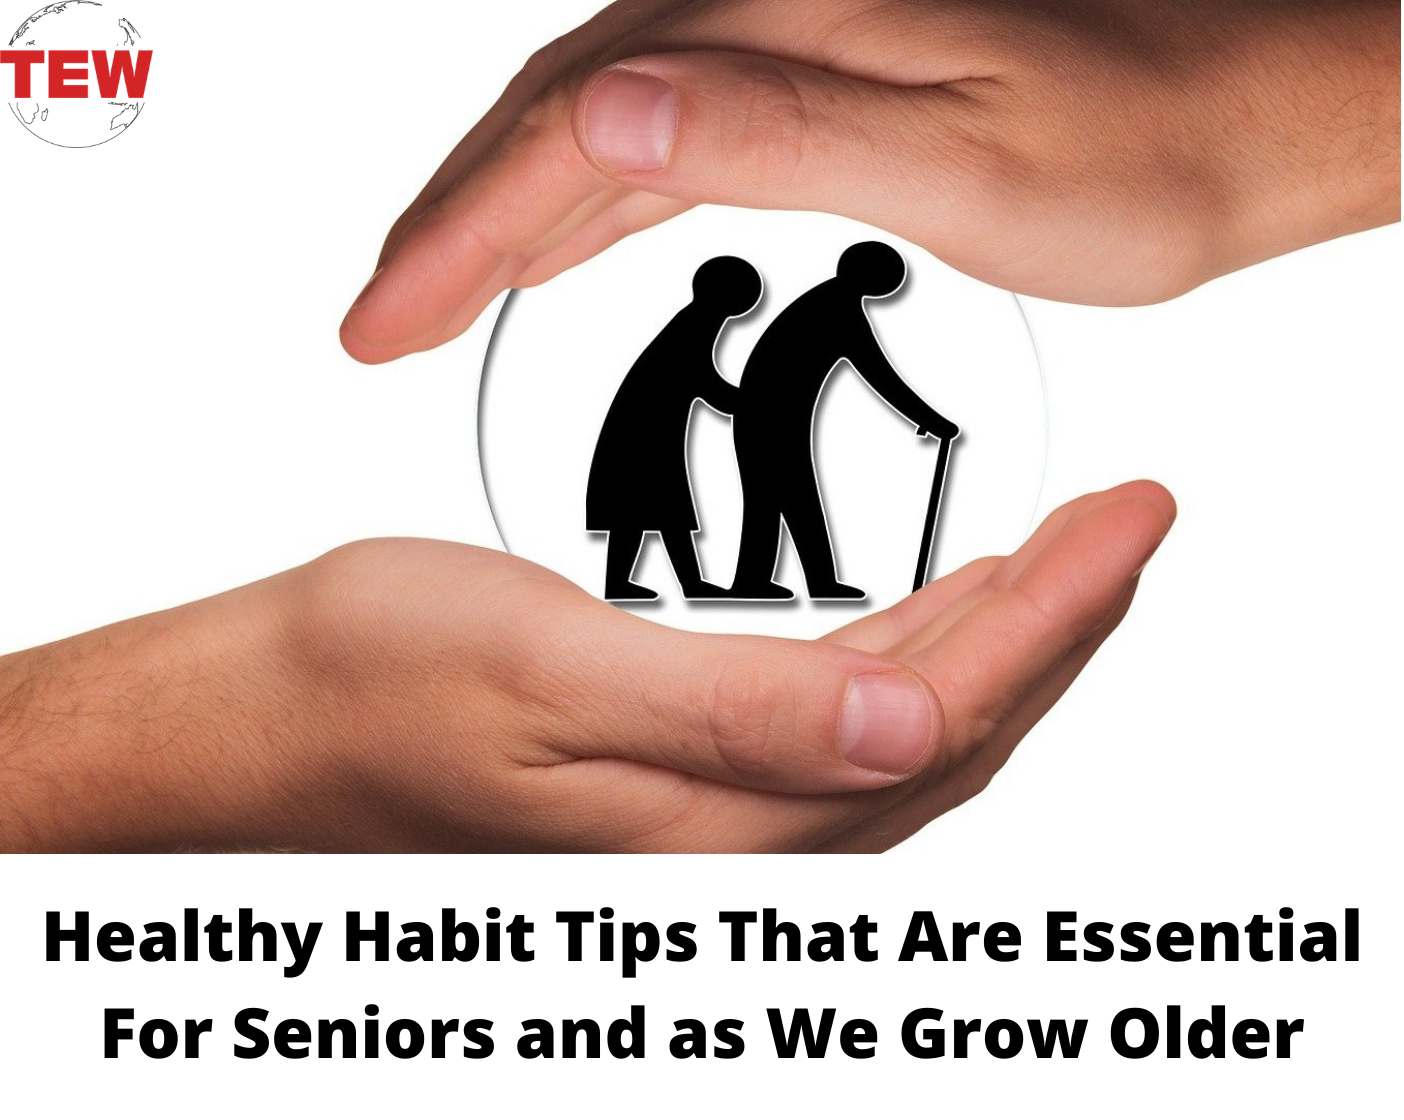 Healthy Habit Tips That Are Essential For Seniors and as We Grow Older